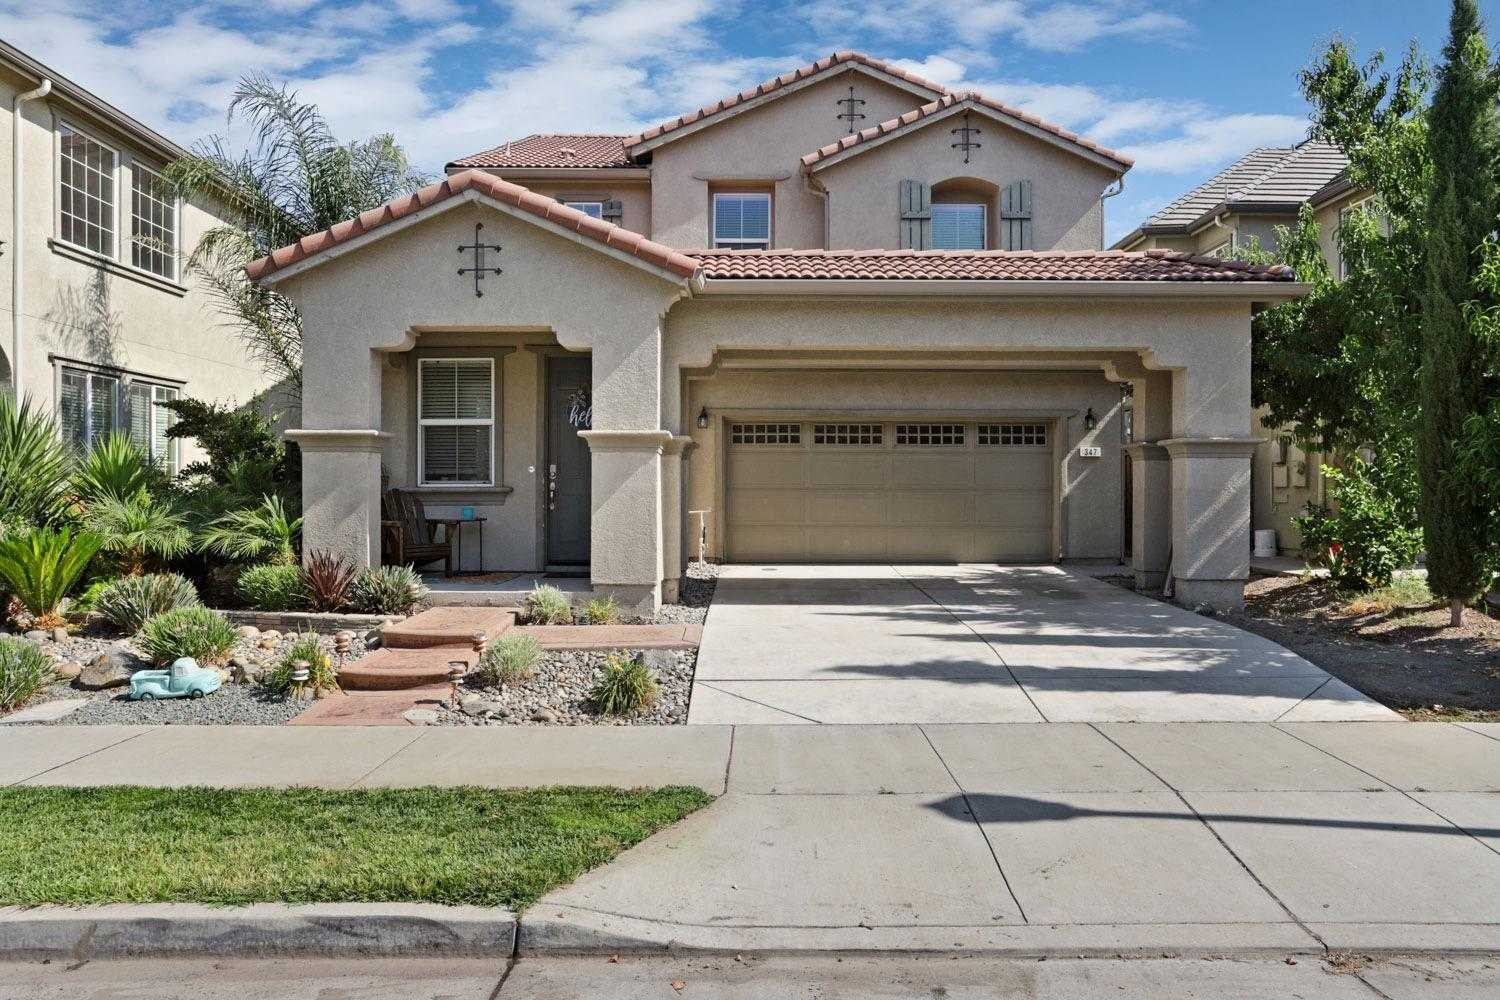 $435,000 - 4Br/3Ba -  for Sale in Lathrop